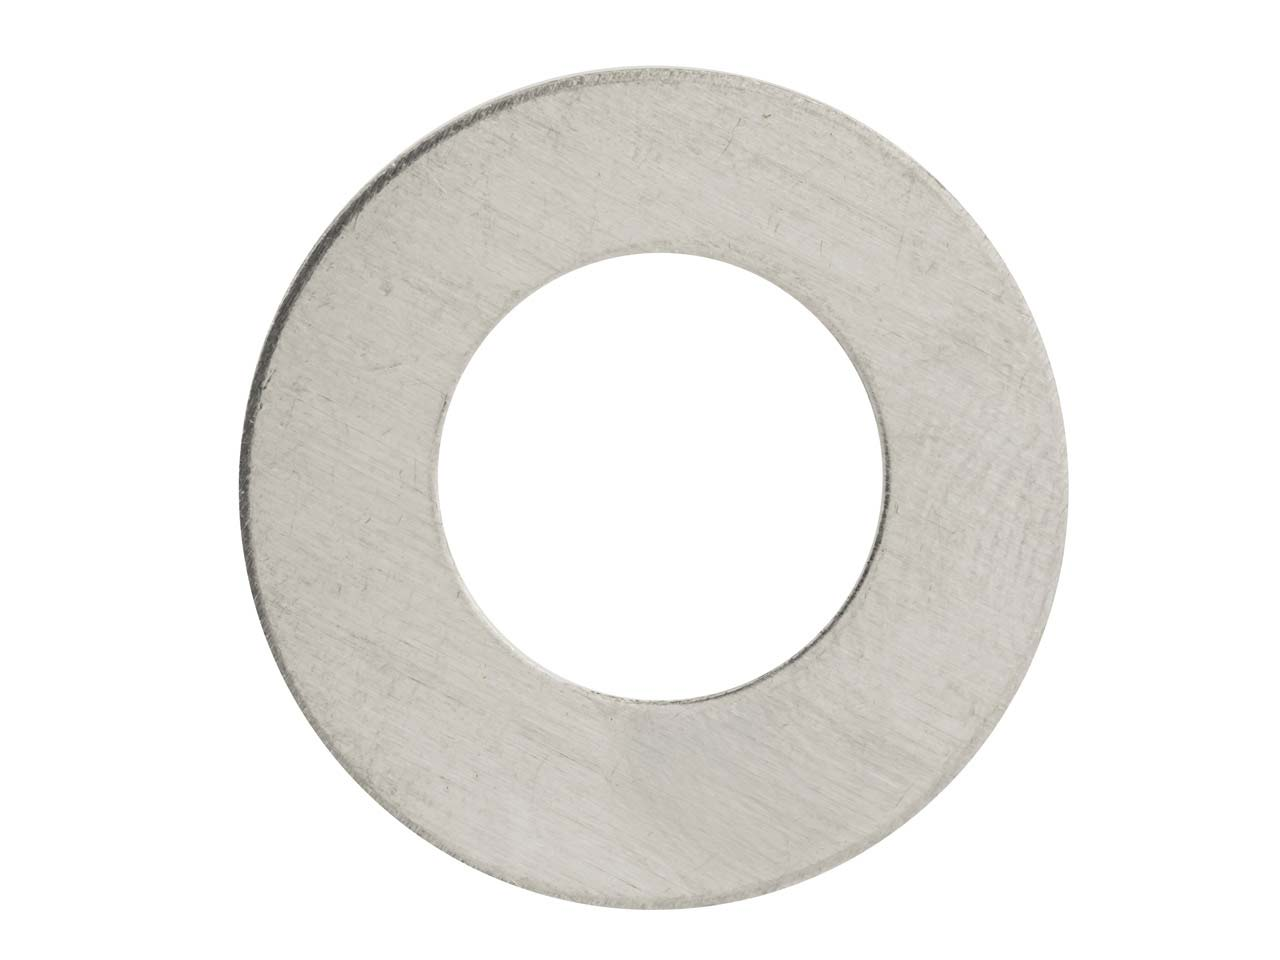 Impressart Aluminium Blanks Round  Washer 25.4mm X 0.8mm, Pack of 14